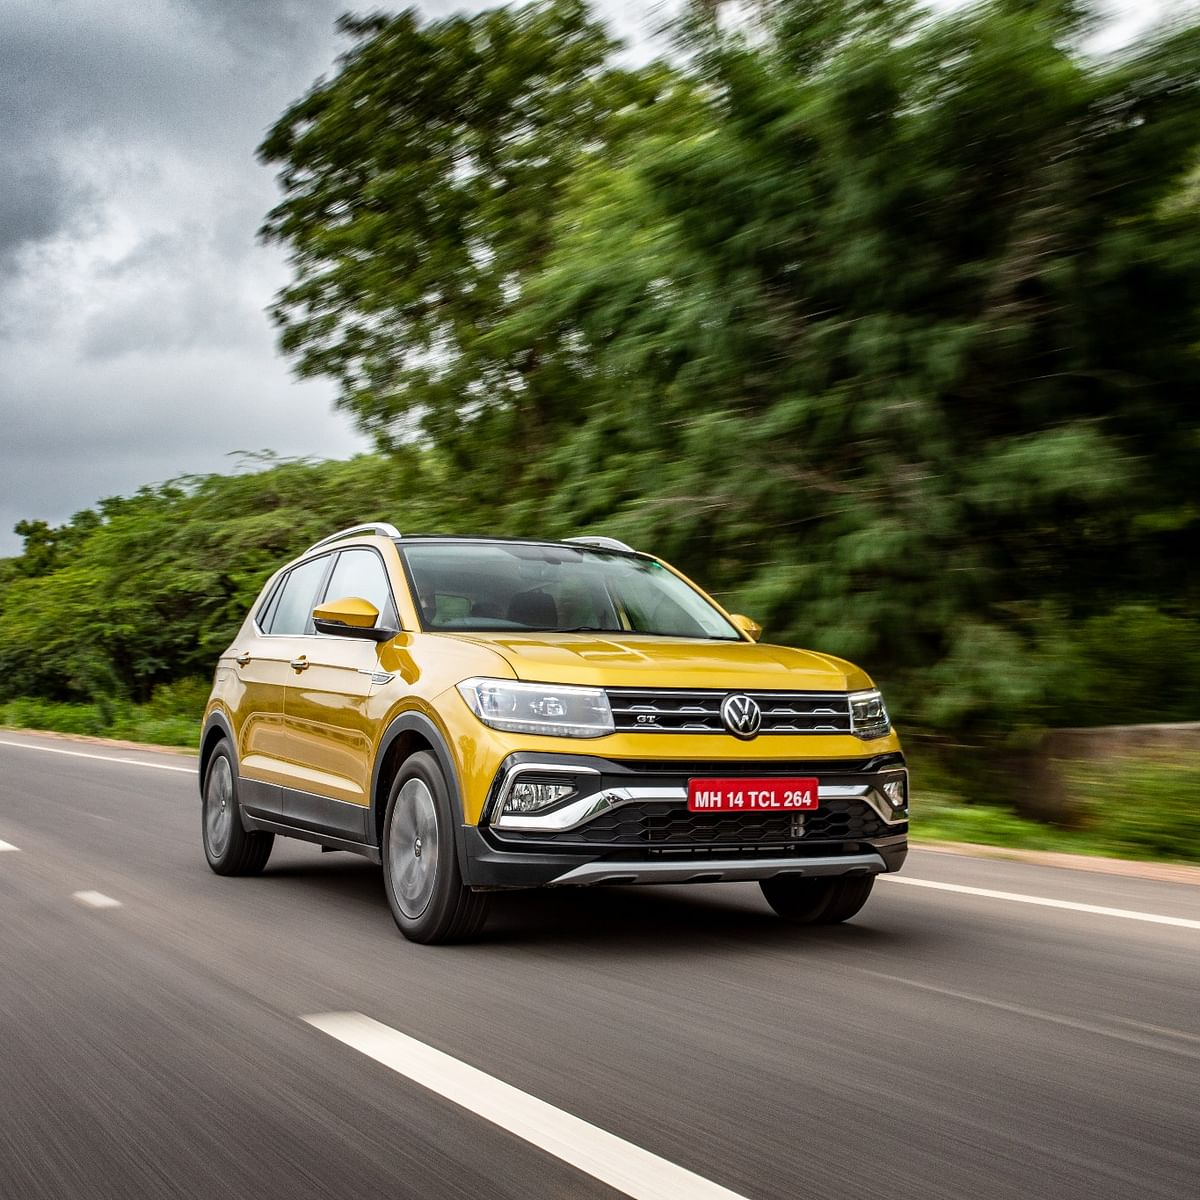 2021 Volkswagen Taigun launched at Rs 10.49 lakh